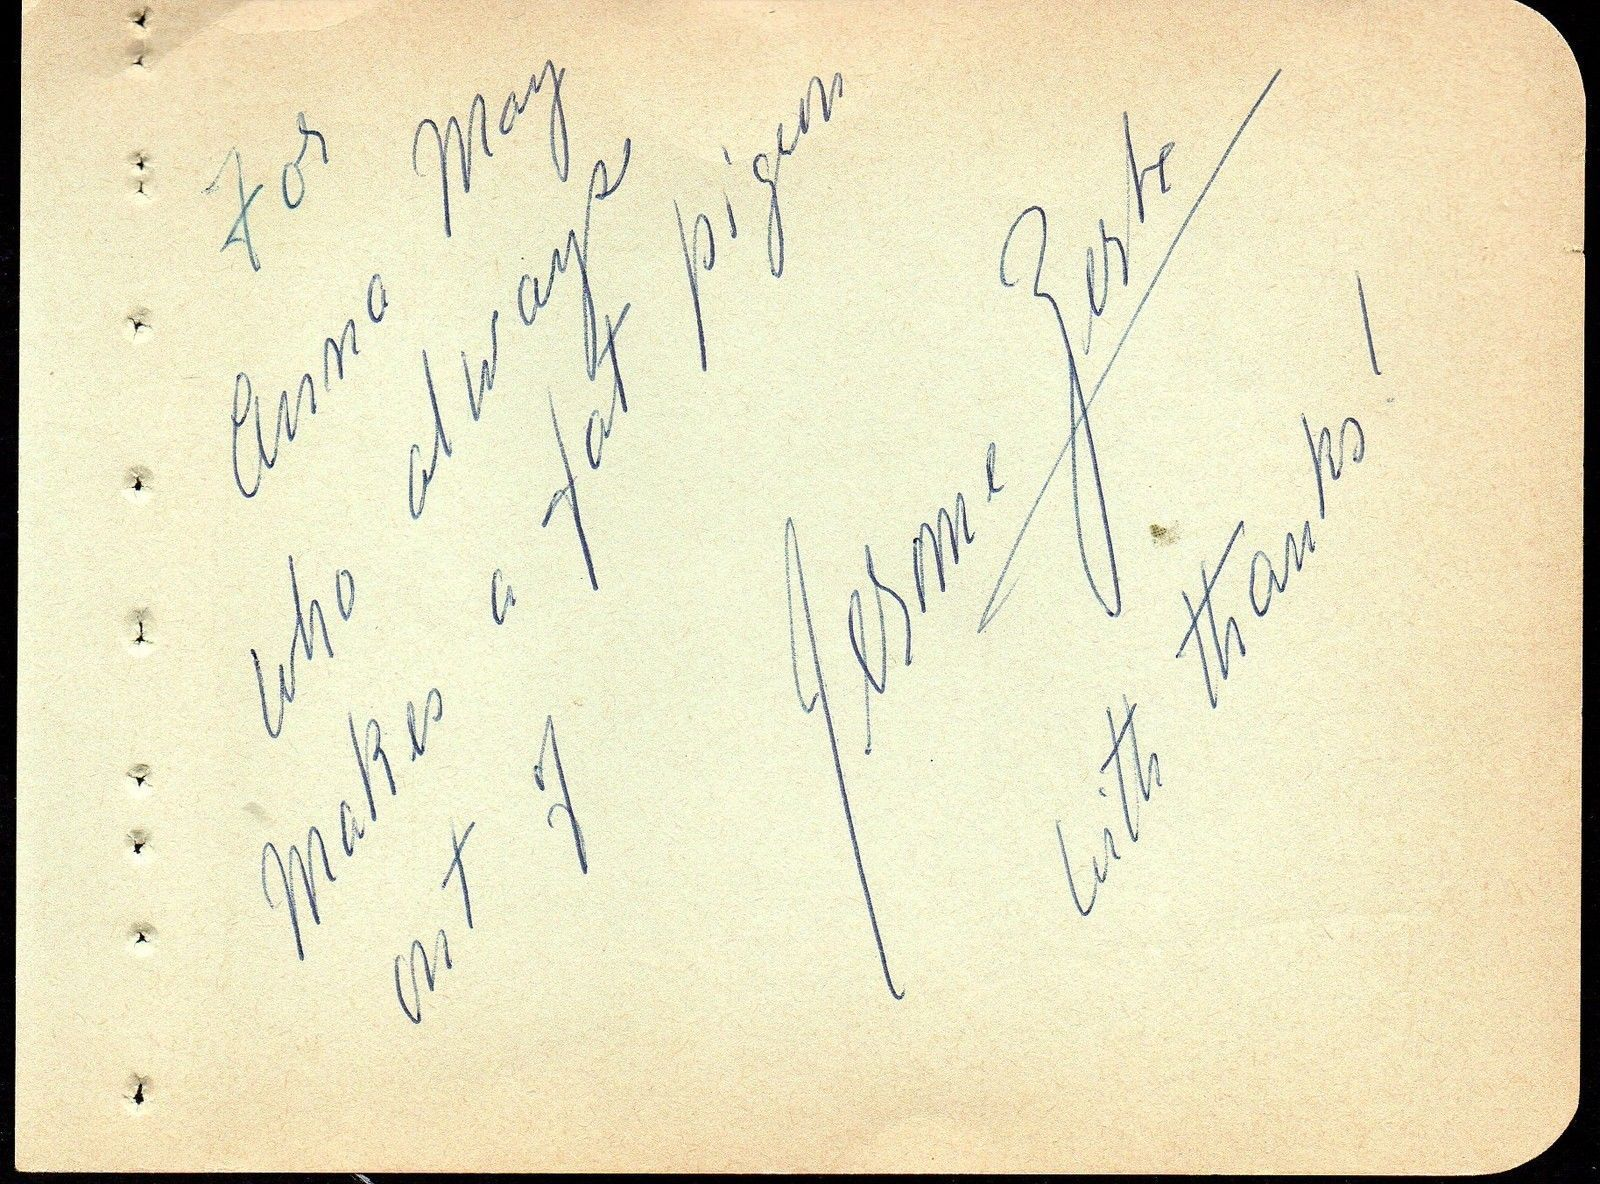 "JEROME ZERBE Autograph signed on album page. Famed photographer ""paparazzo"""